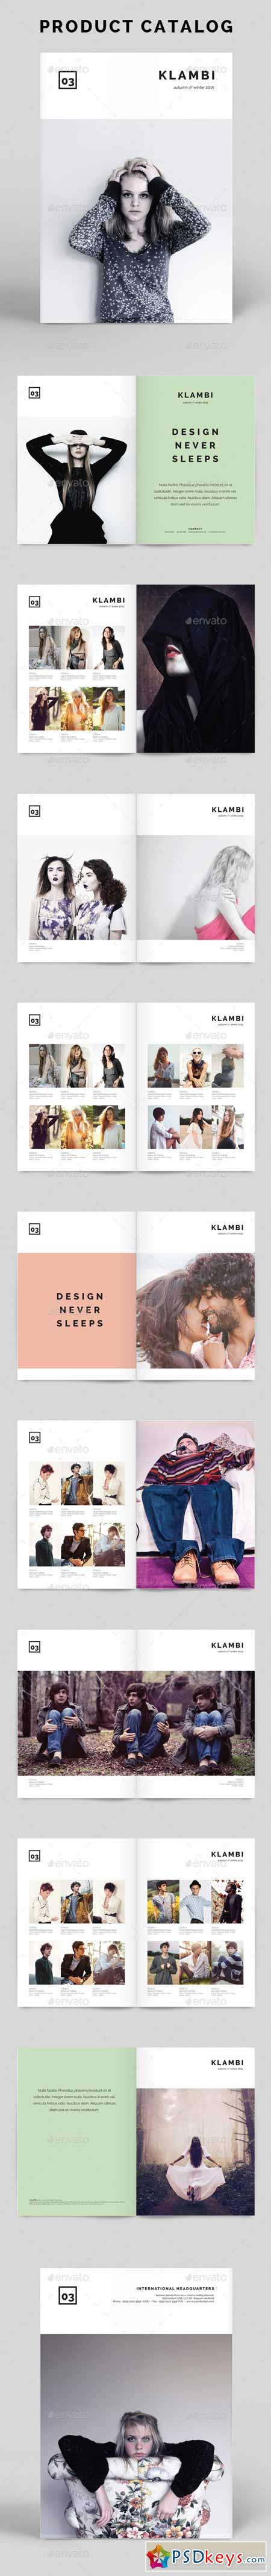 Product Catalog Klambi Template 9096871